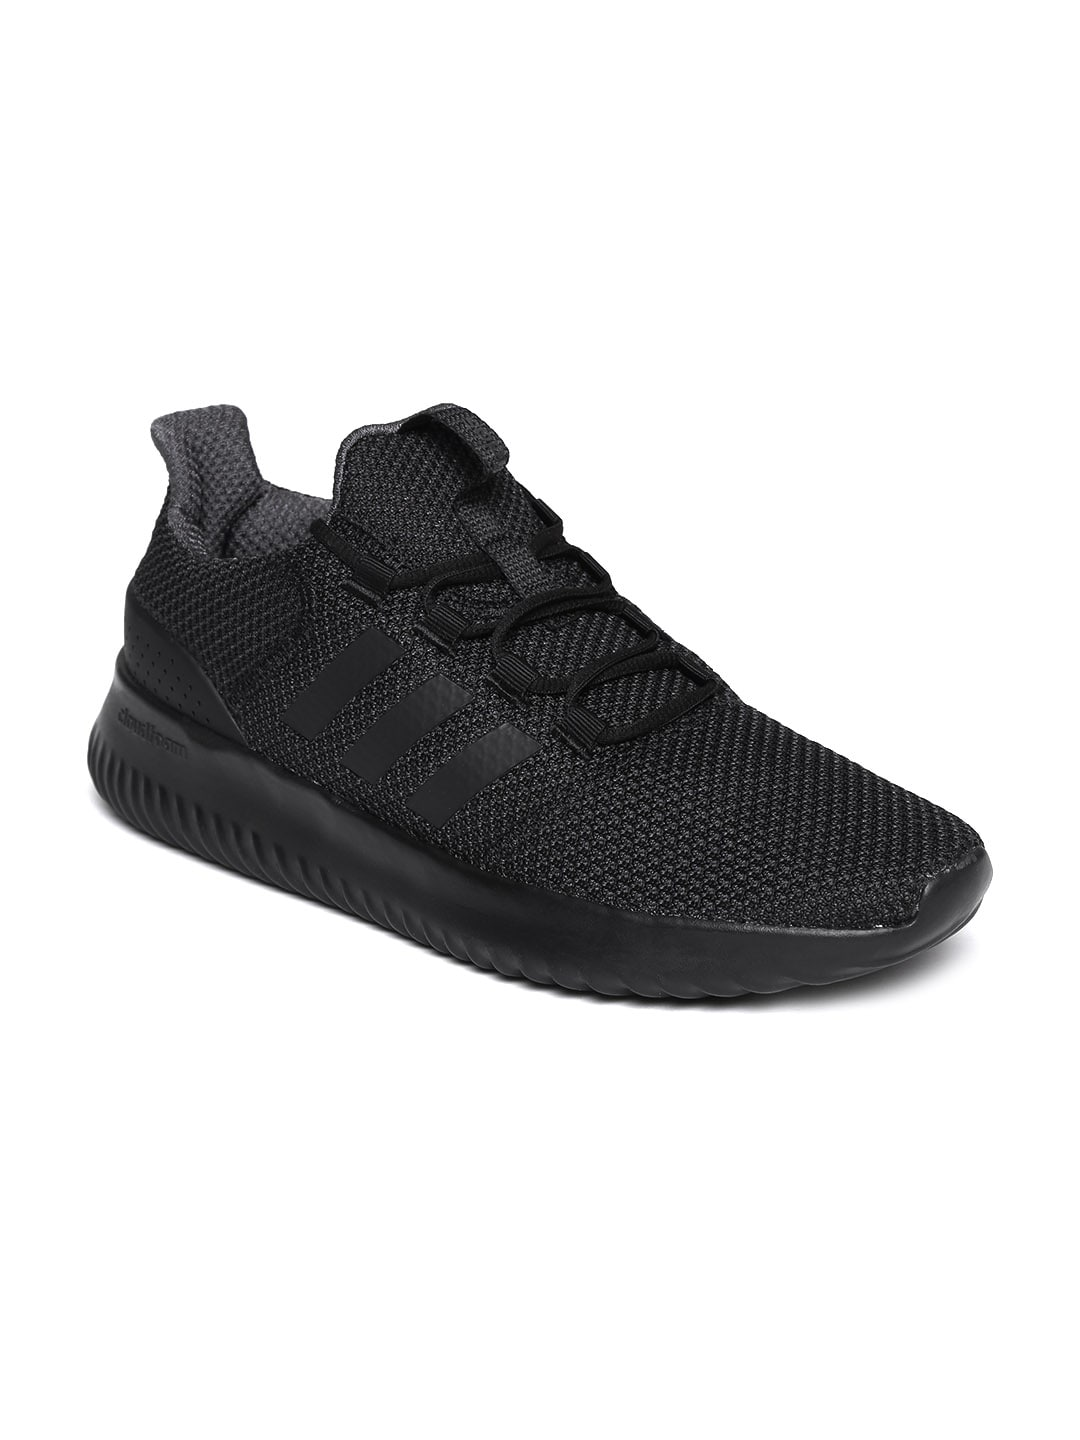 d8a8b9a89c117e Adidas Neo Casual Shoes - Buy Adidas Neo Casual Shoes Online - Myntra